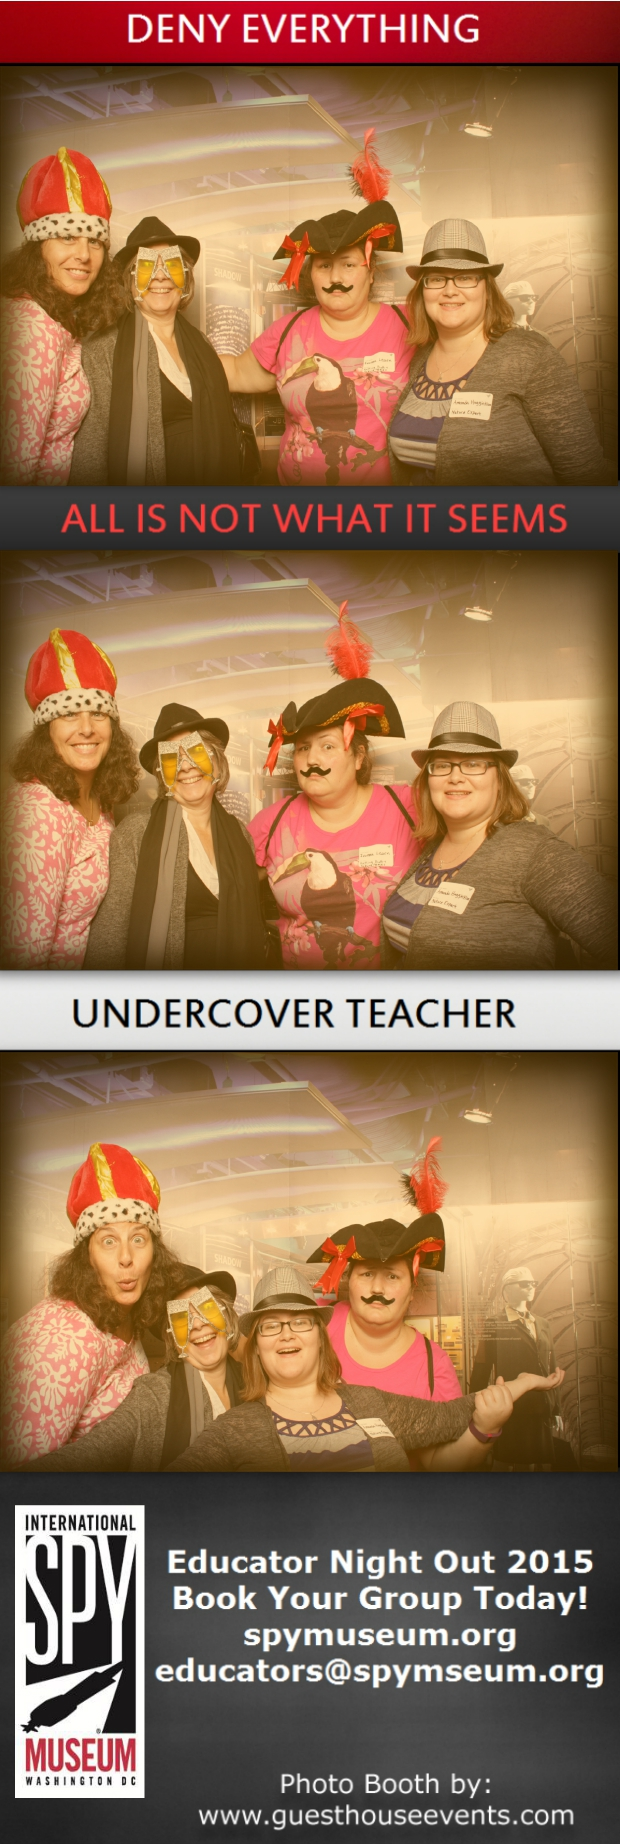 Guest House Events Photo Booth Spy Museum Educator Night Out (30).jpg